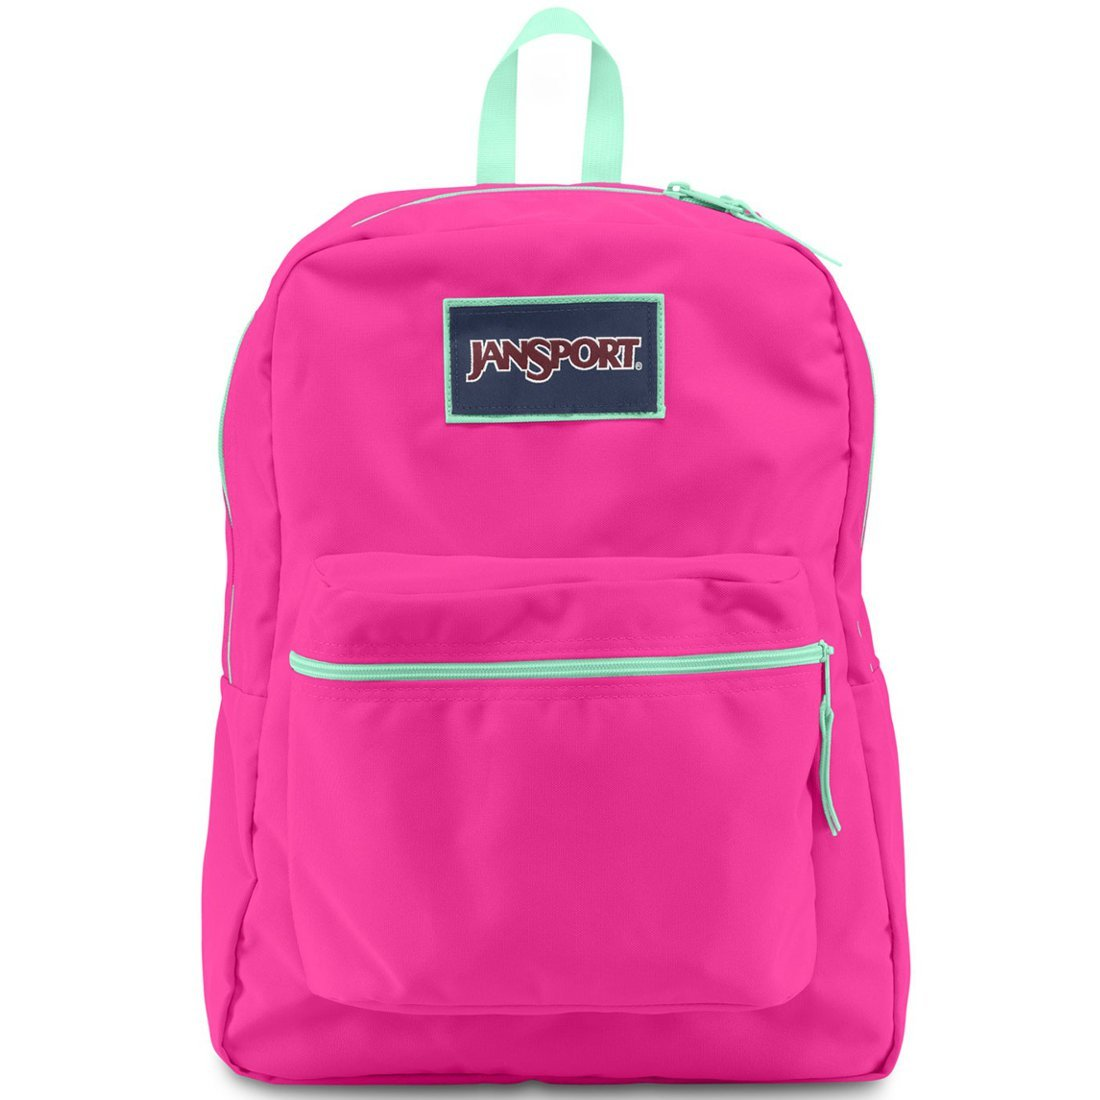 Jansport Backpacks On Sale oJa3EQp9